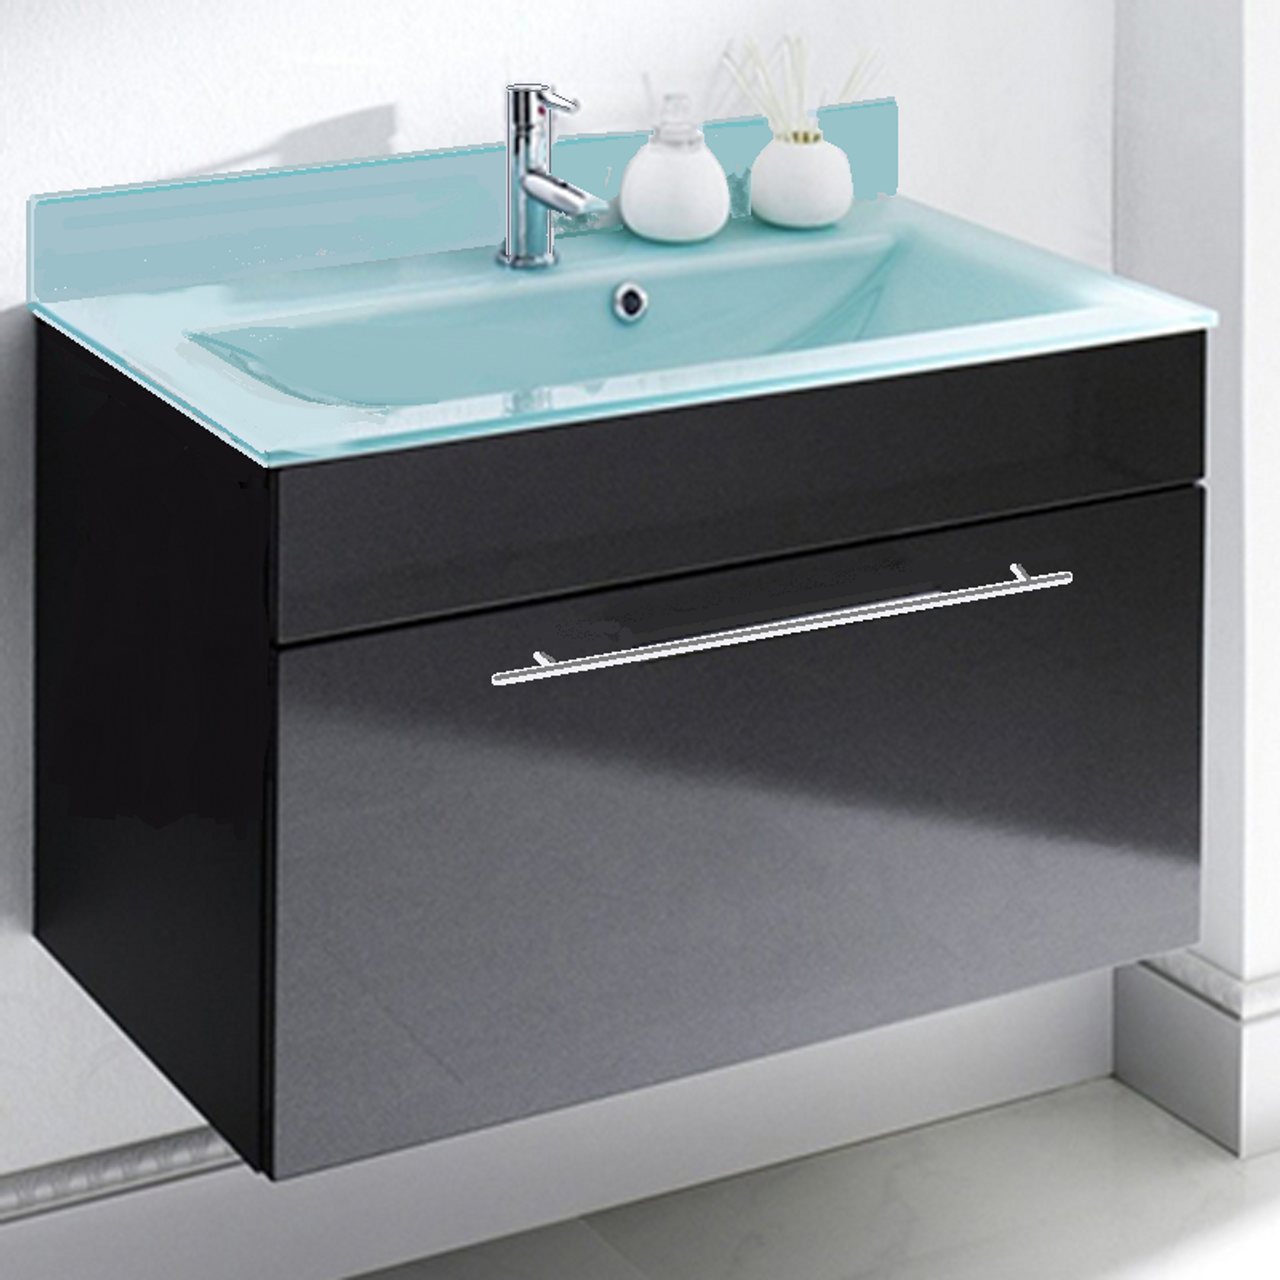 Awesome Lv 1040E 24Wide Espresso Bathroom Vanity Glass Integrated Sink Backsplash Soft Closing Drawer Interior Design Ideas Clesiryabchikinfo